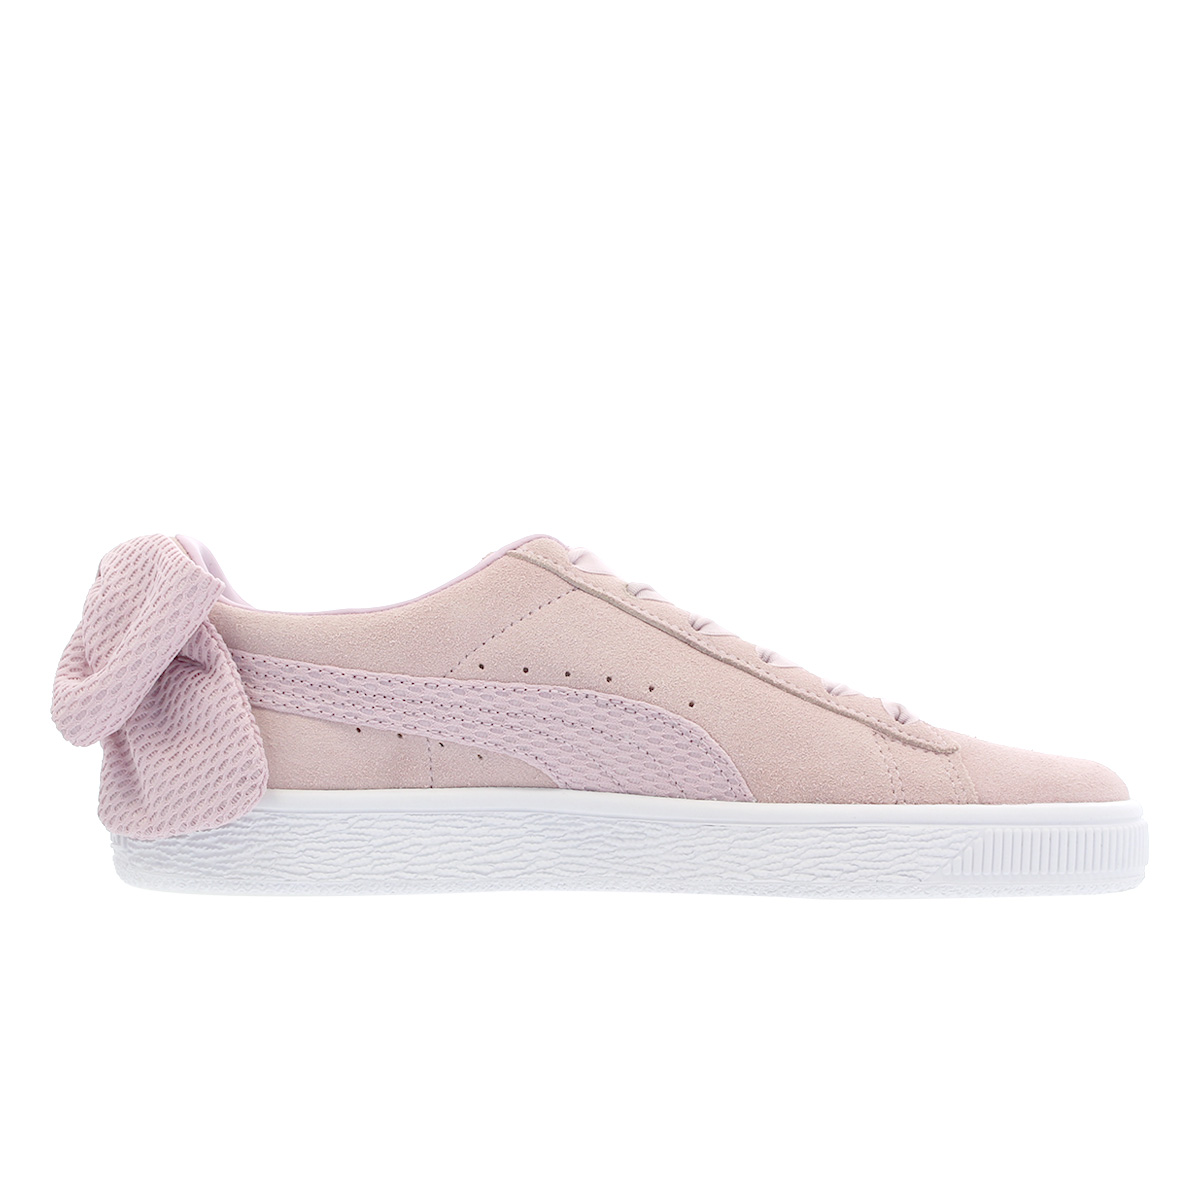 PUMA SUEDE BOW UPRISING WMNS Puma suede cloth BOW up rising women WINSOME  ORCHID PUMA WHITE 367 2ddf8d8d5